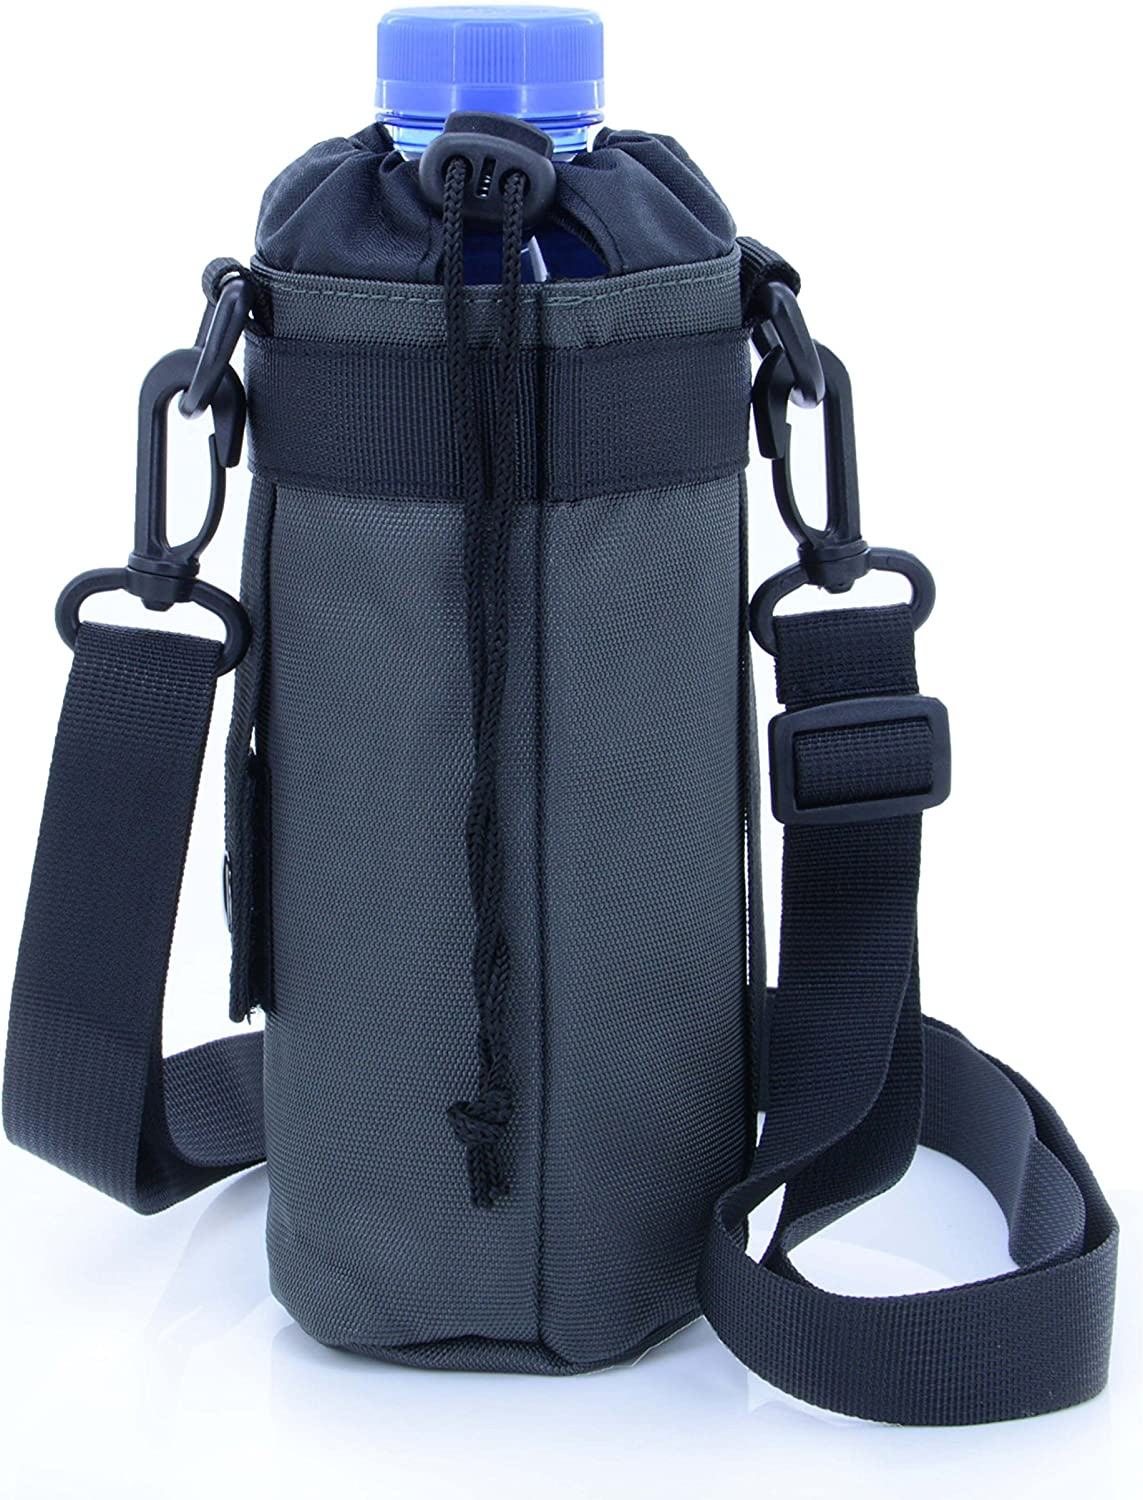 U-TIMES Water Bottle Holder 750 ml Nylon Water Bottle Carrier/Bag/Pouch/Case/Cover/Sleeve with Shoulder Strap & Belt Handle & Molle Accessories - Drawstring Closure